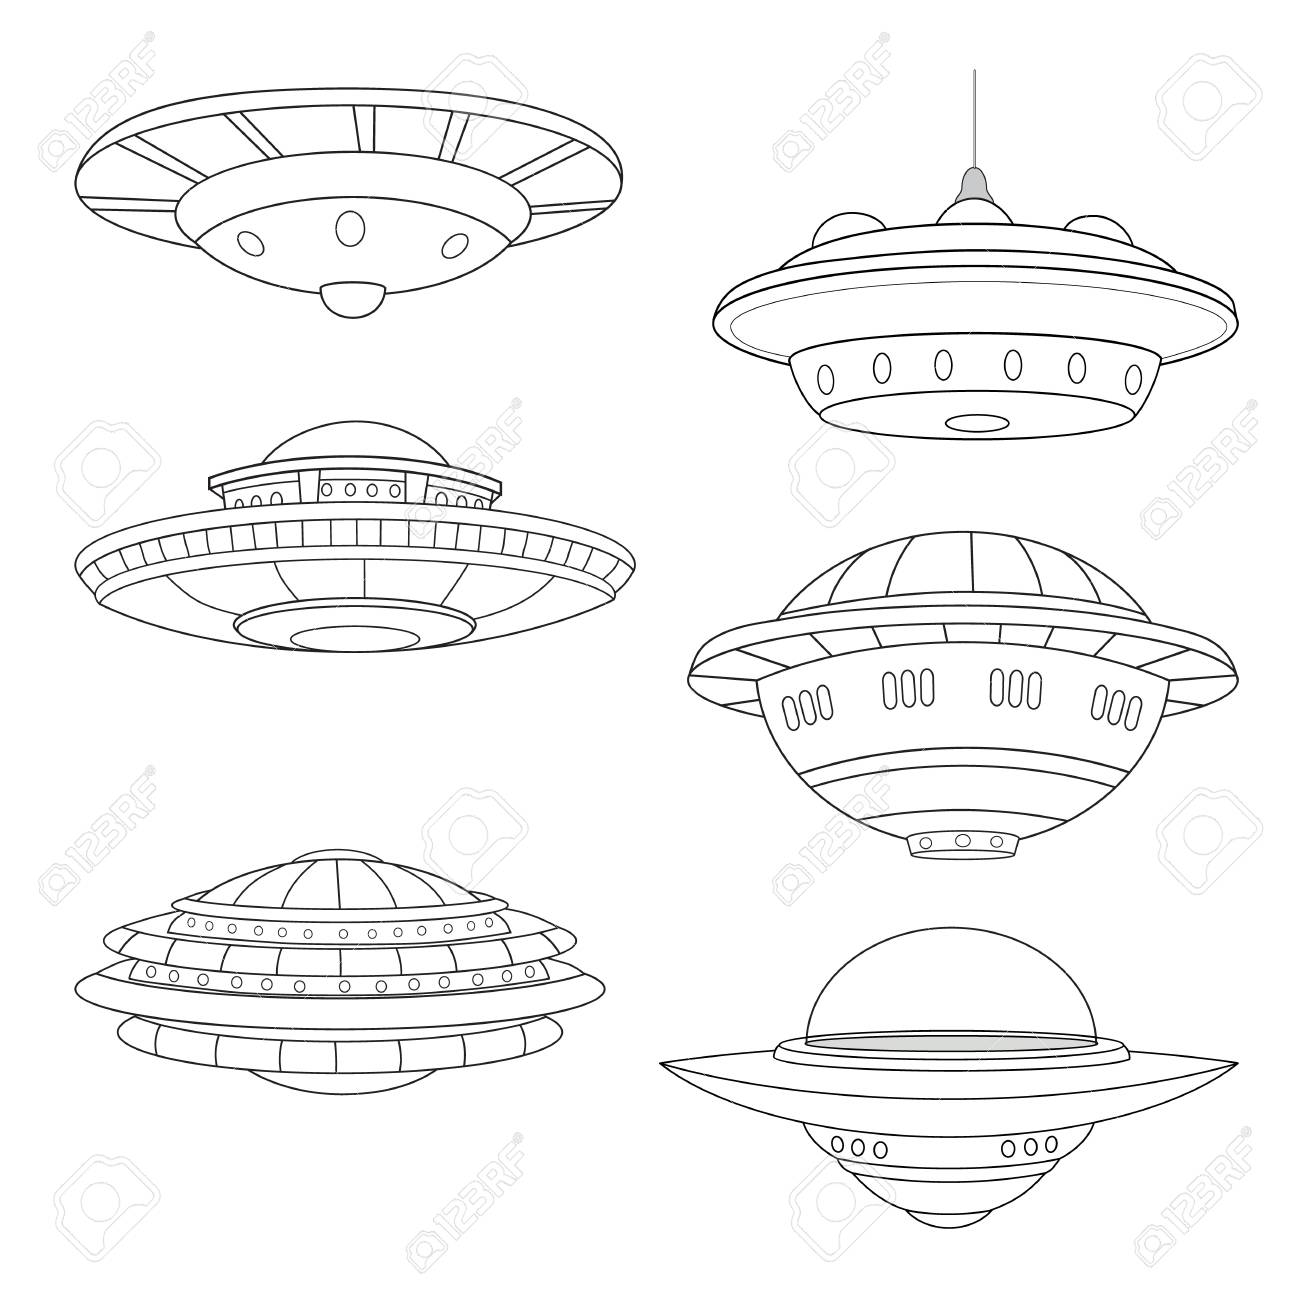 Set Of Flying Saucers Line Art White Background Royalty Free Cliparts Vectors And Stock Illustration Image 95364624